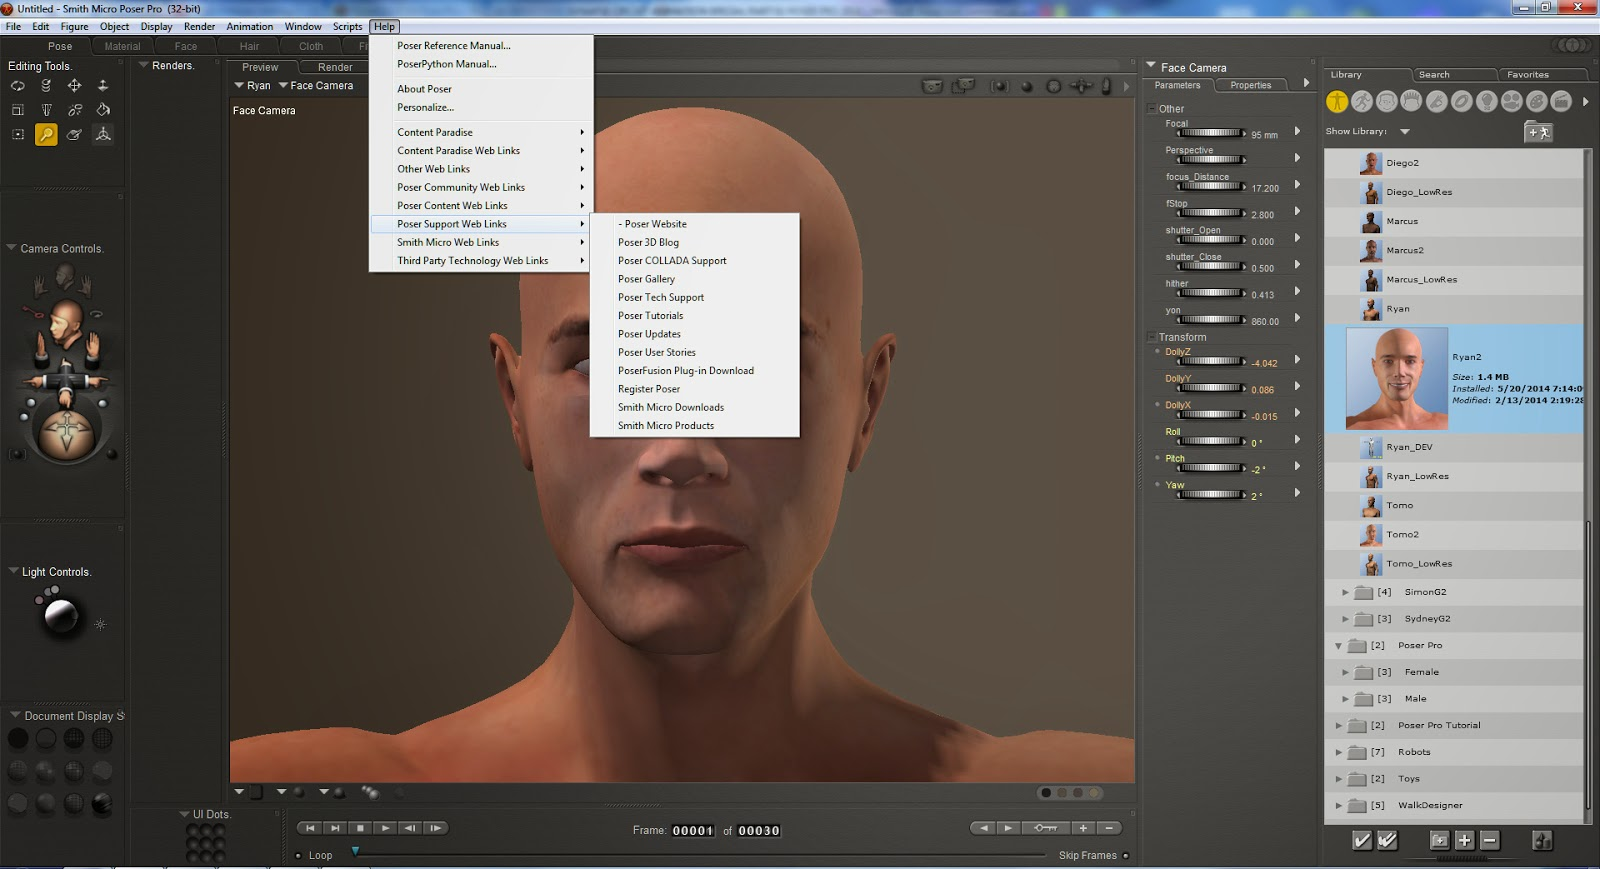 Synapse Circuit Technology Review: SYNAPSE CIRCUIT POSER PRO 2014